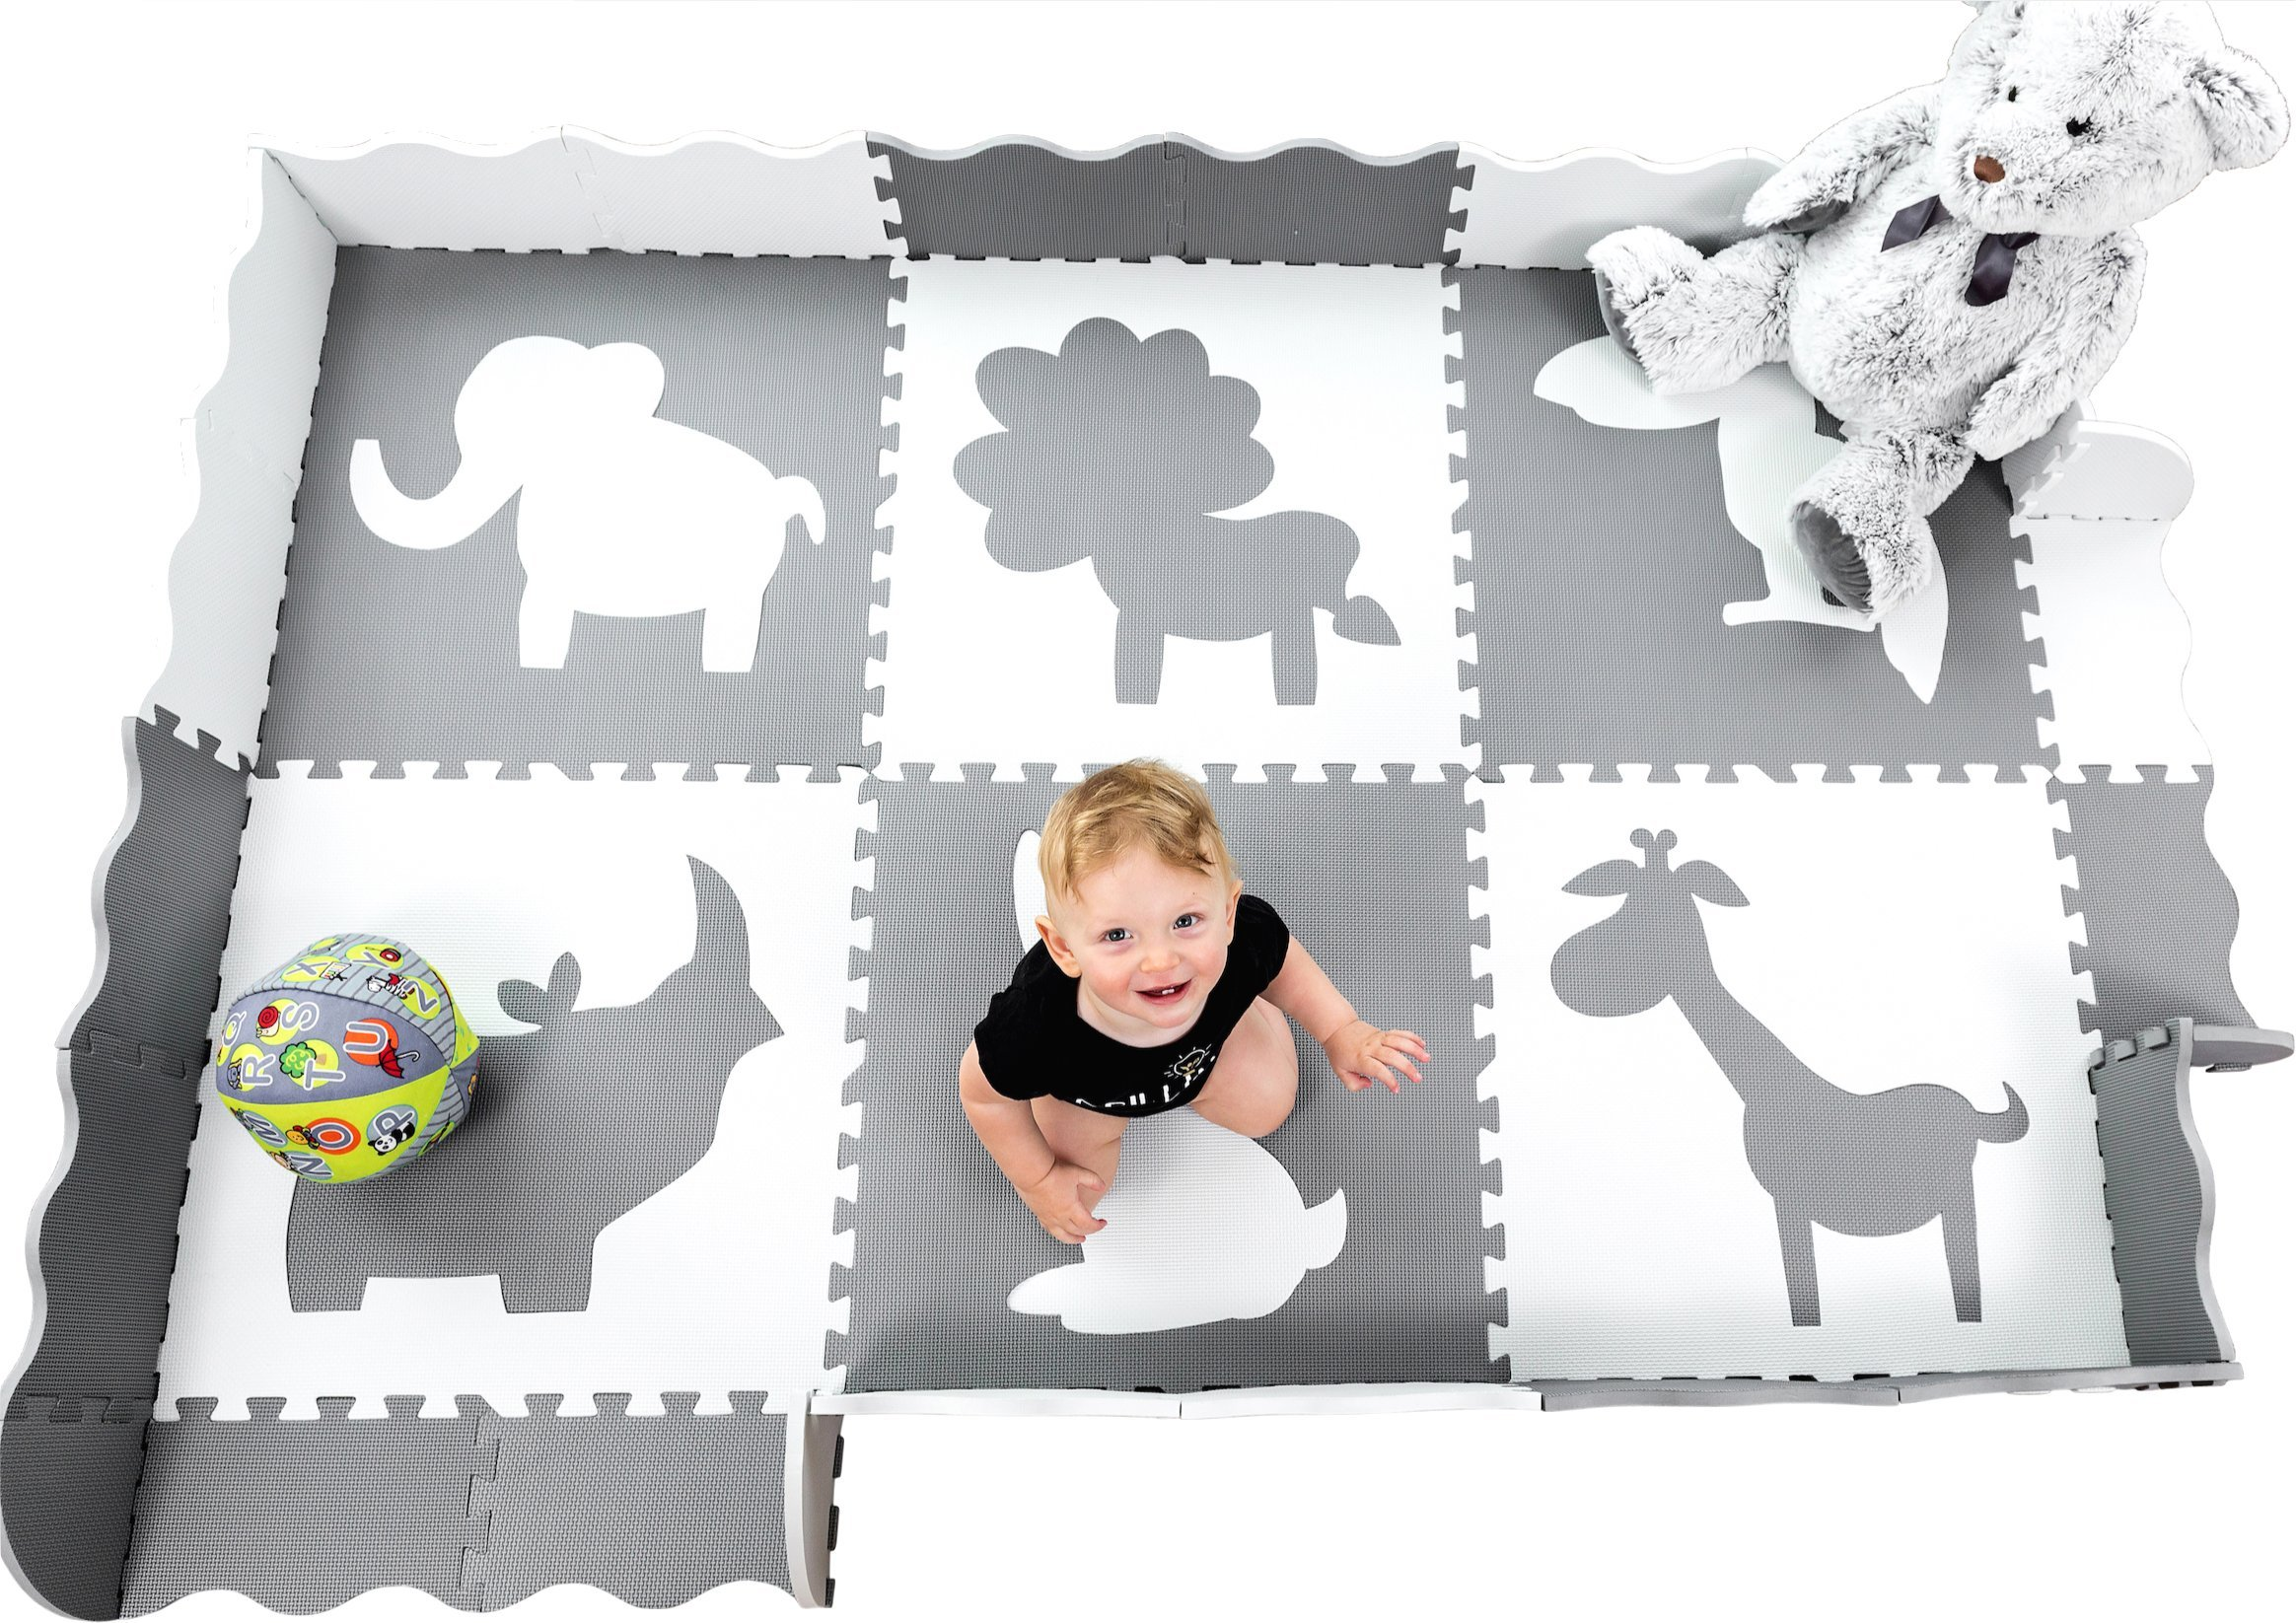 Large (5x7') Baby Play Mat with Interlocking Foam Floor Tiles. Neutral, Non Toxic Baby Playmat for Nursery, Playroom or Living Room (Grey and White) by Wee Giggles (Image #1)